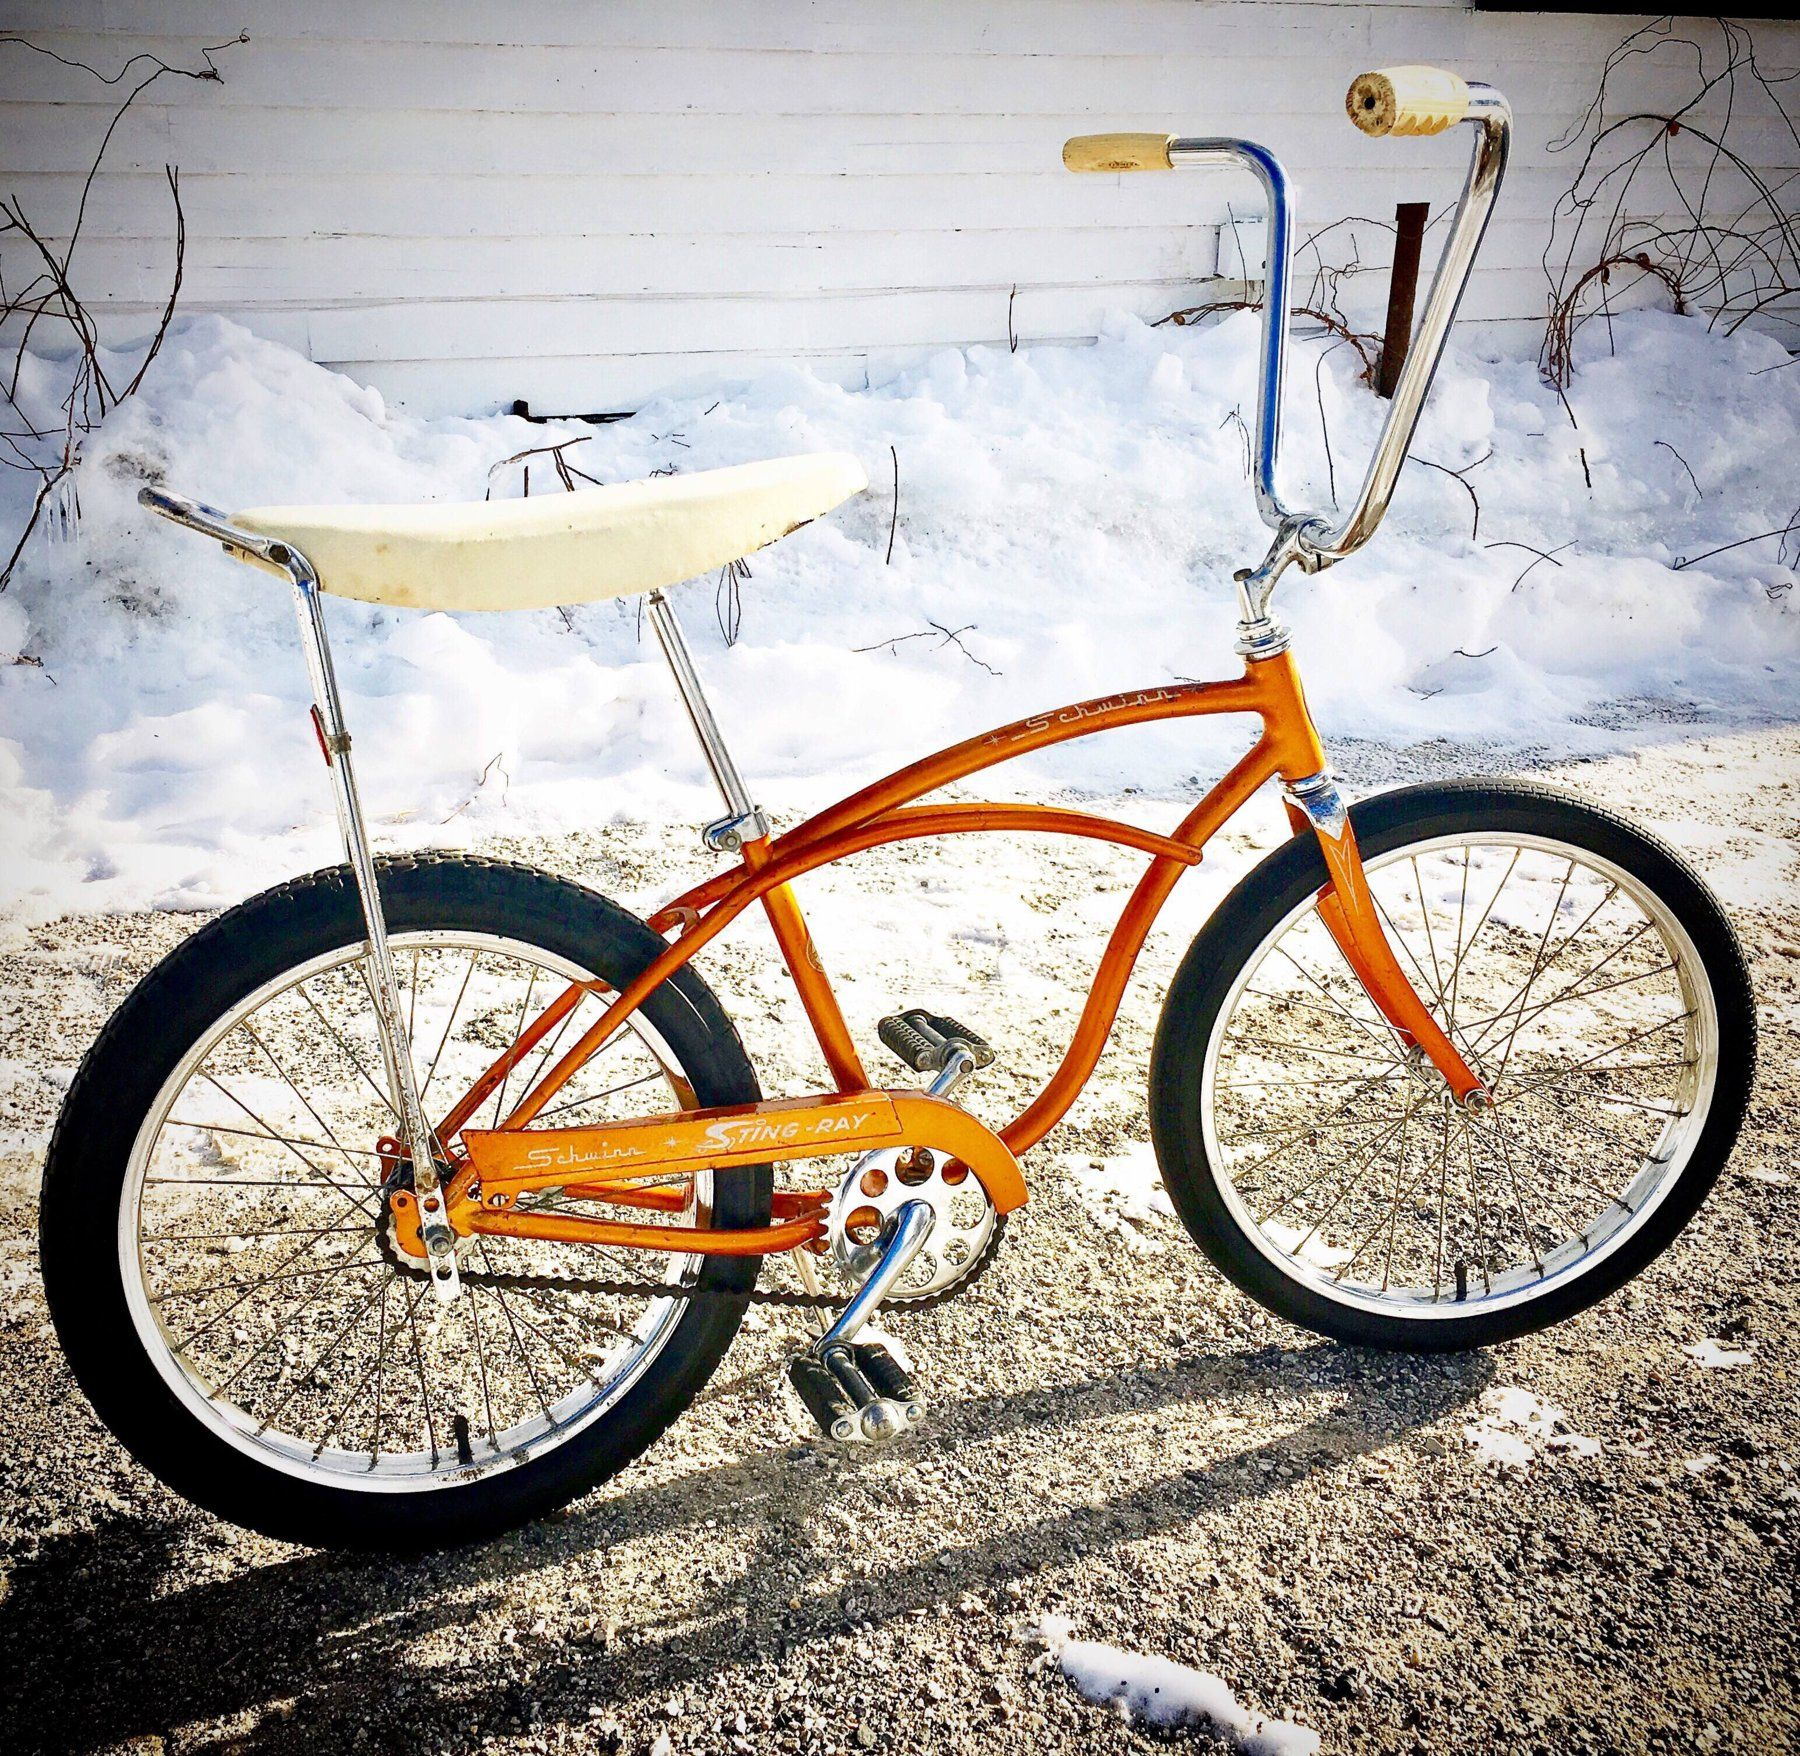 What bicycles have you had over the years?-05fdb99d75b4a9dd03fa766464c98234-jpg